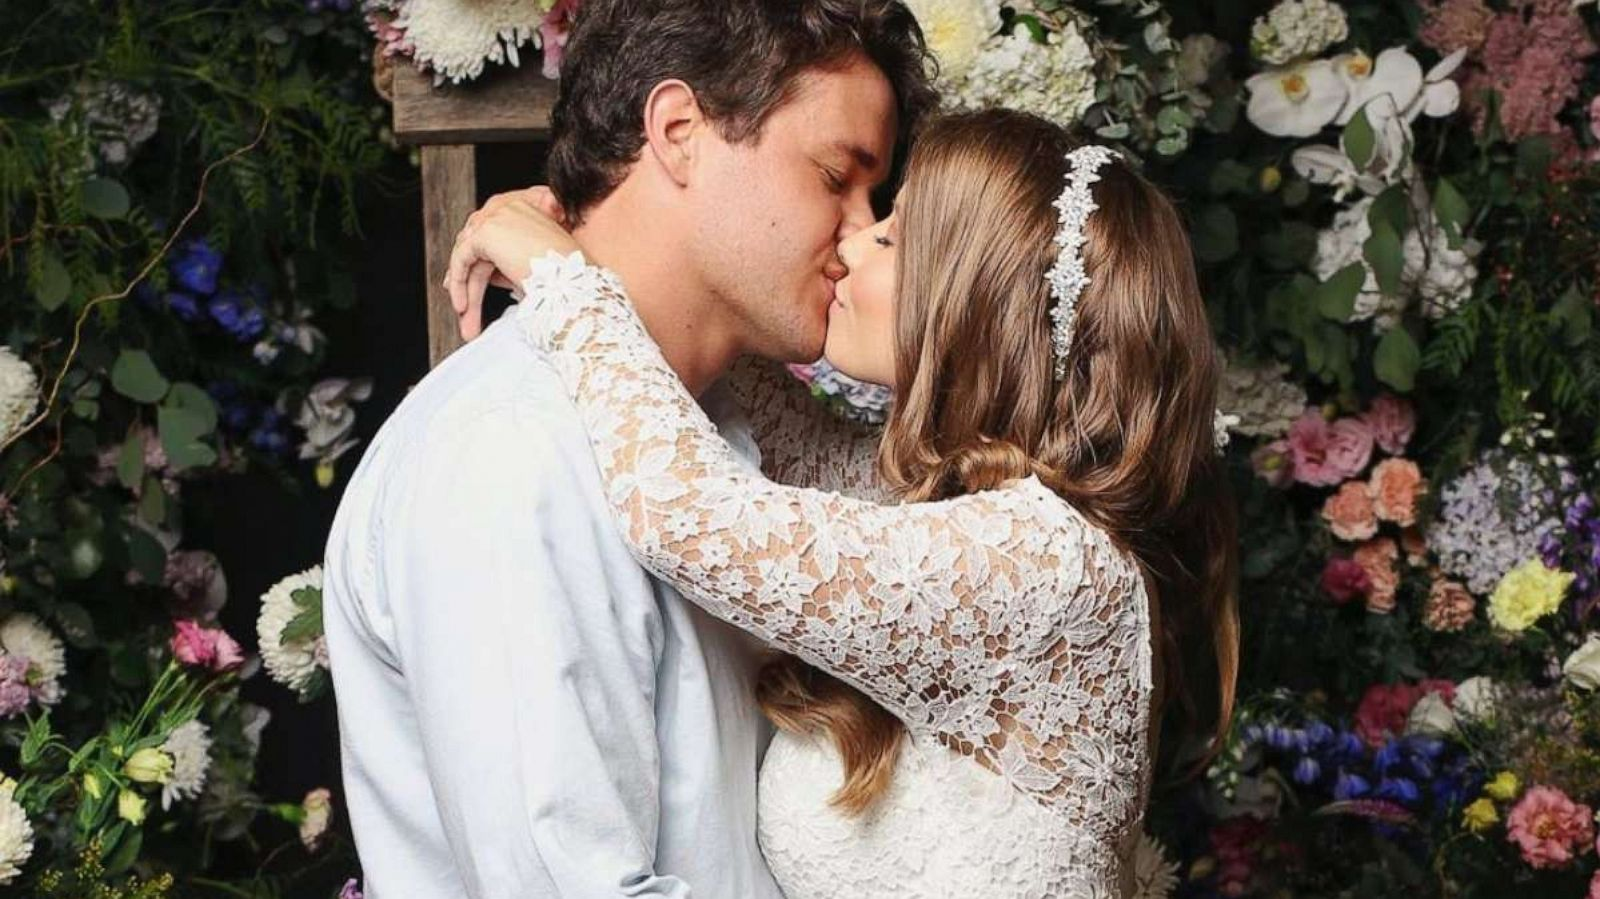 Bindi Irwin Marries Chandler Powell In Small Ceremony At The